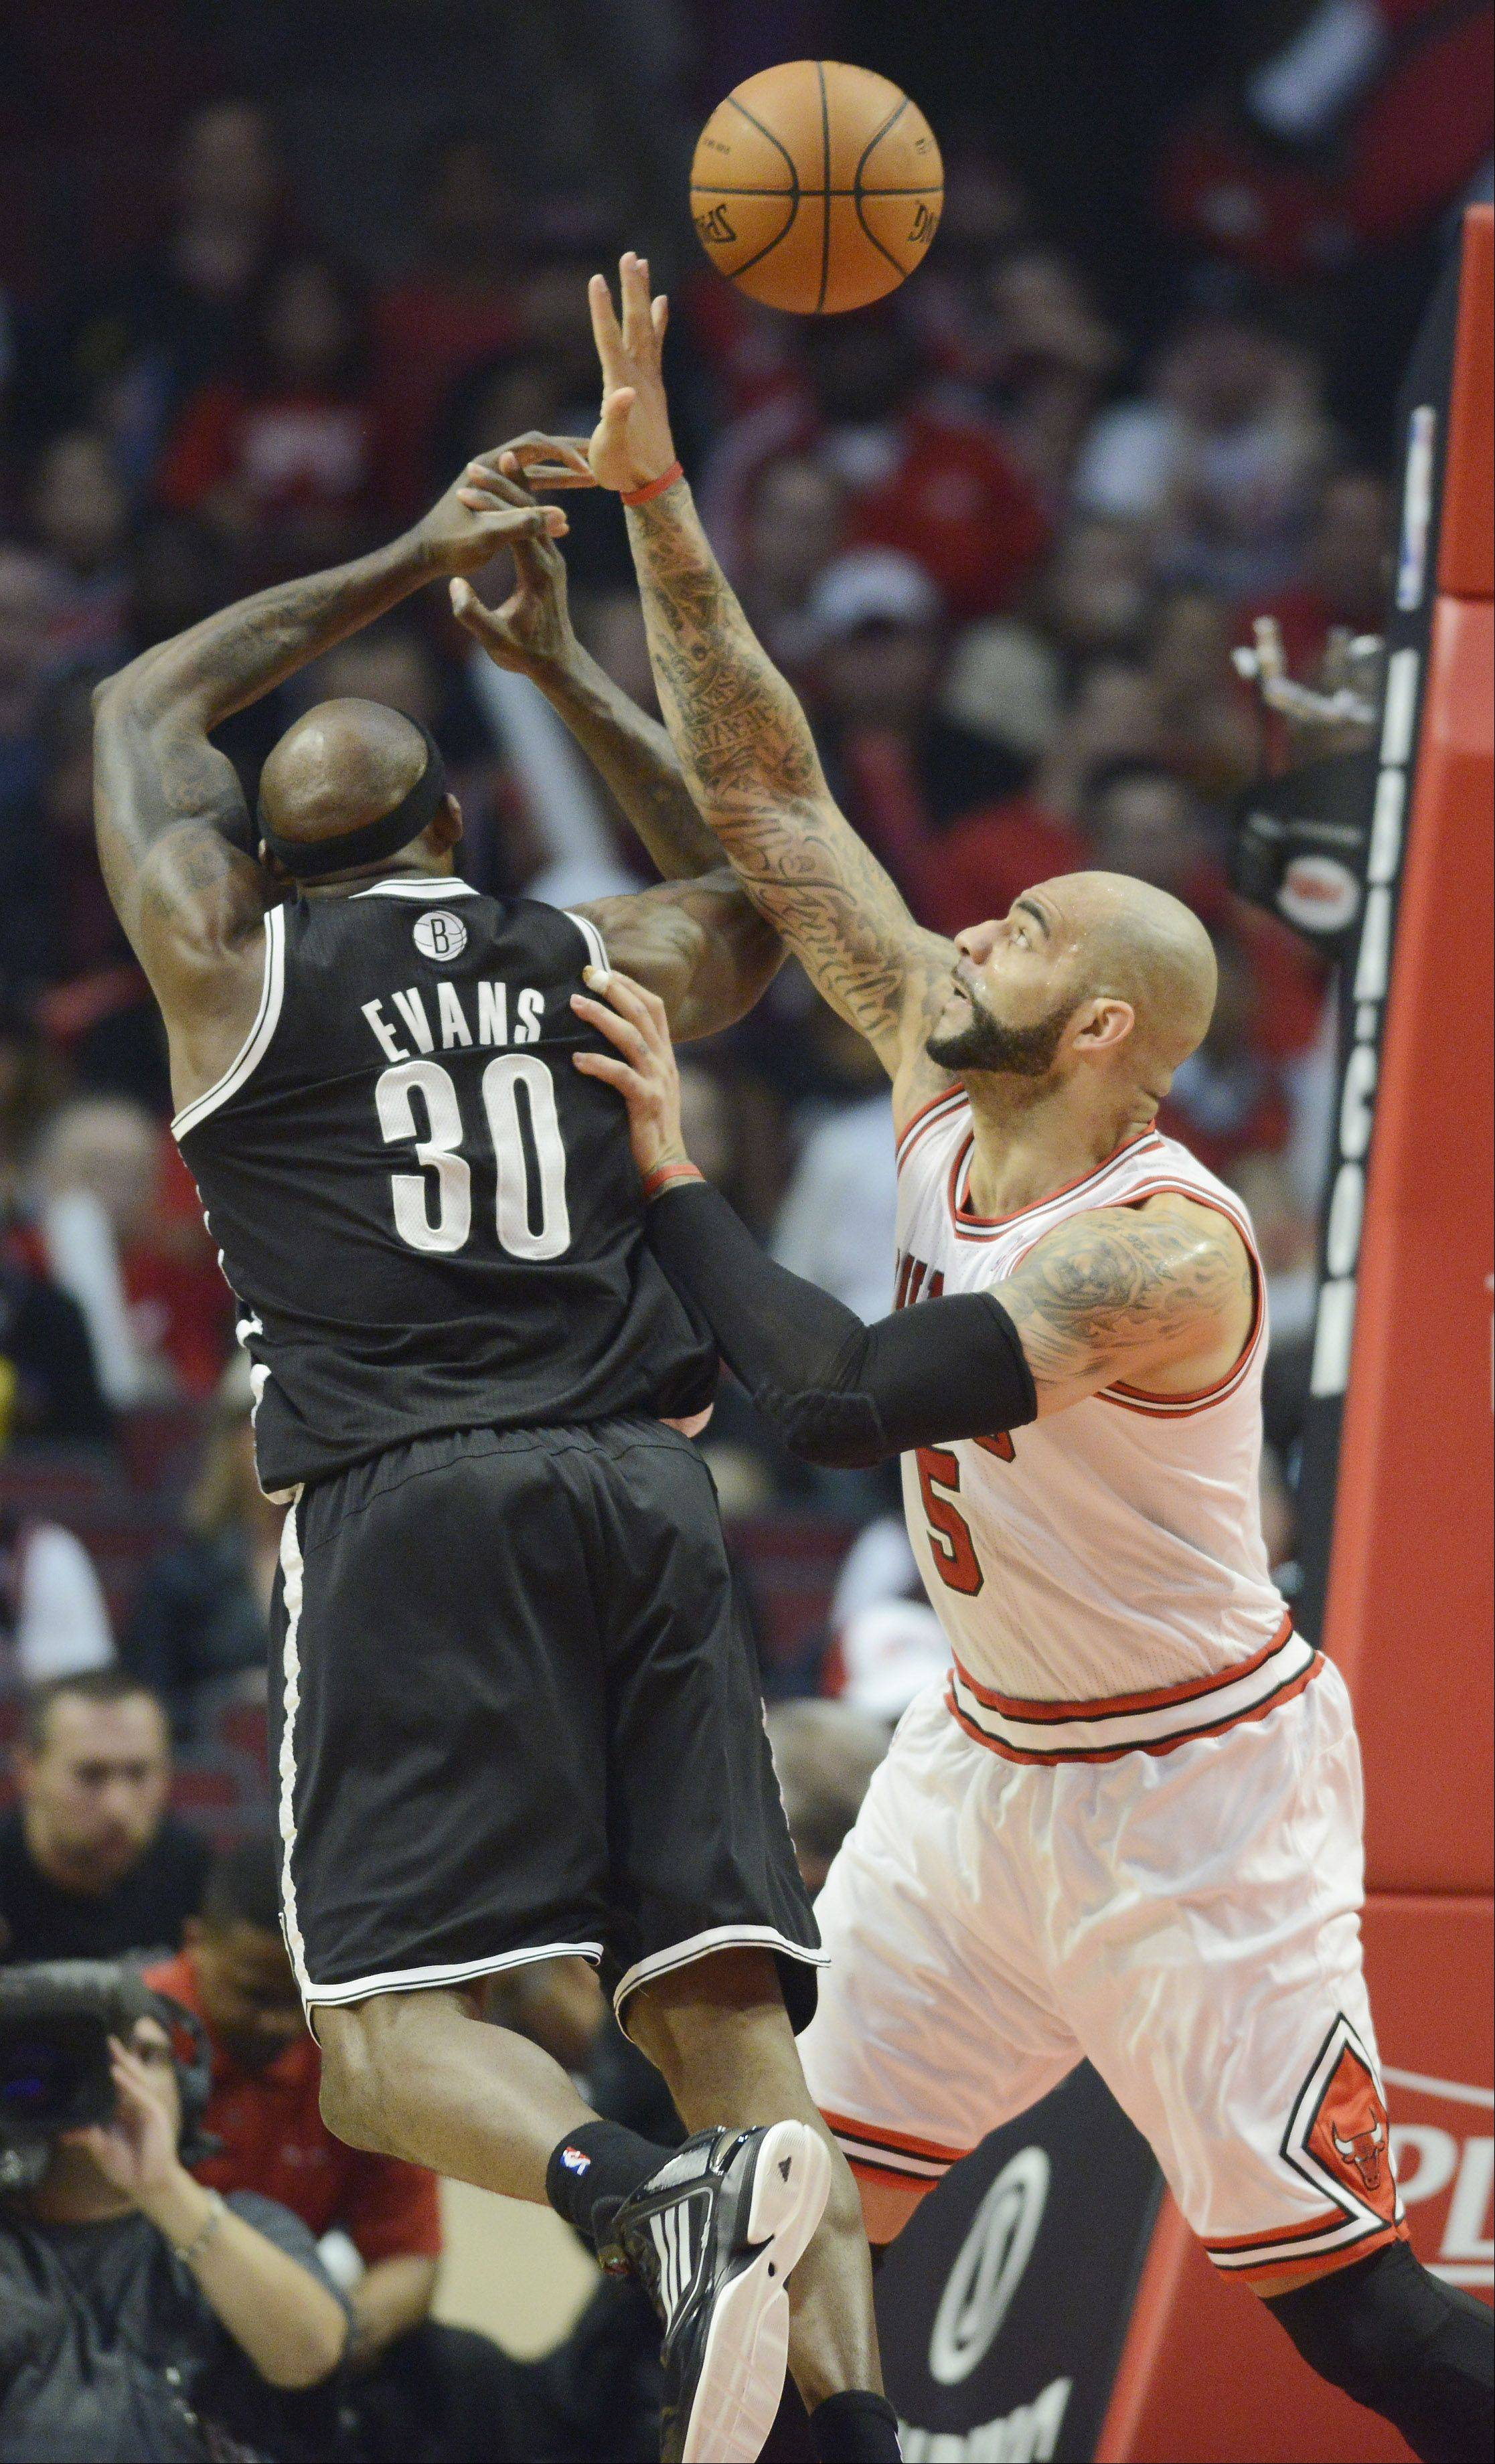 Reggie Evans of the Brooklyn Nets gets fouled by Carlos Boozer of the Chicago Bulls in Game 6 of the first round playoff game at the United Center in Chicago, Thursday, May 2, 2013.